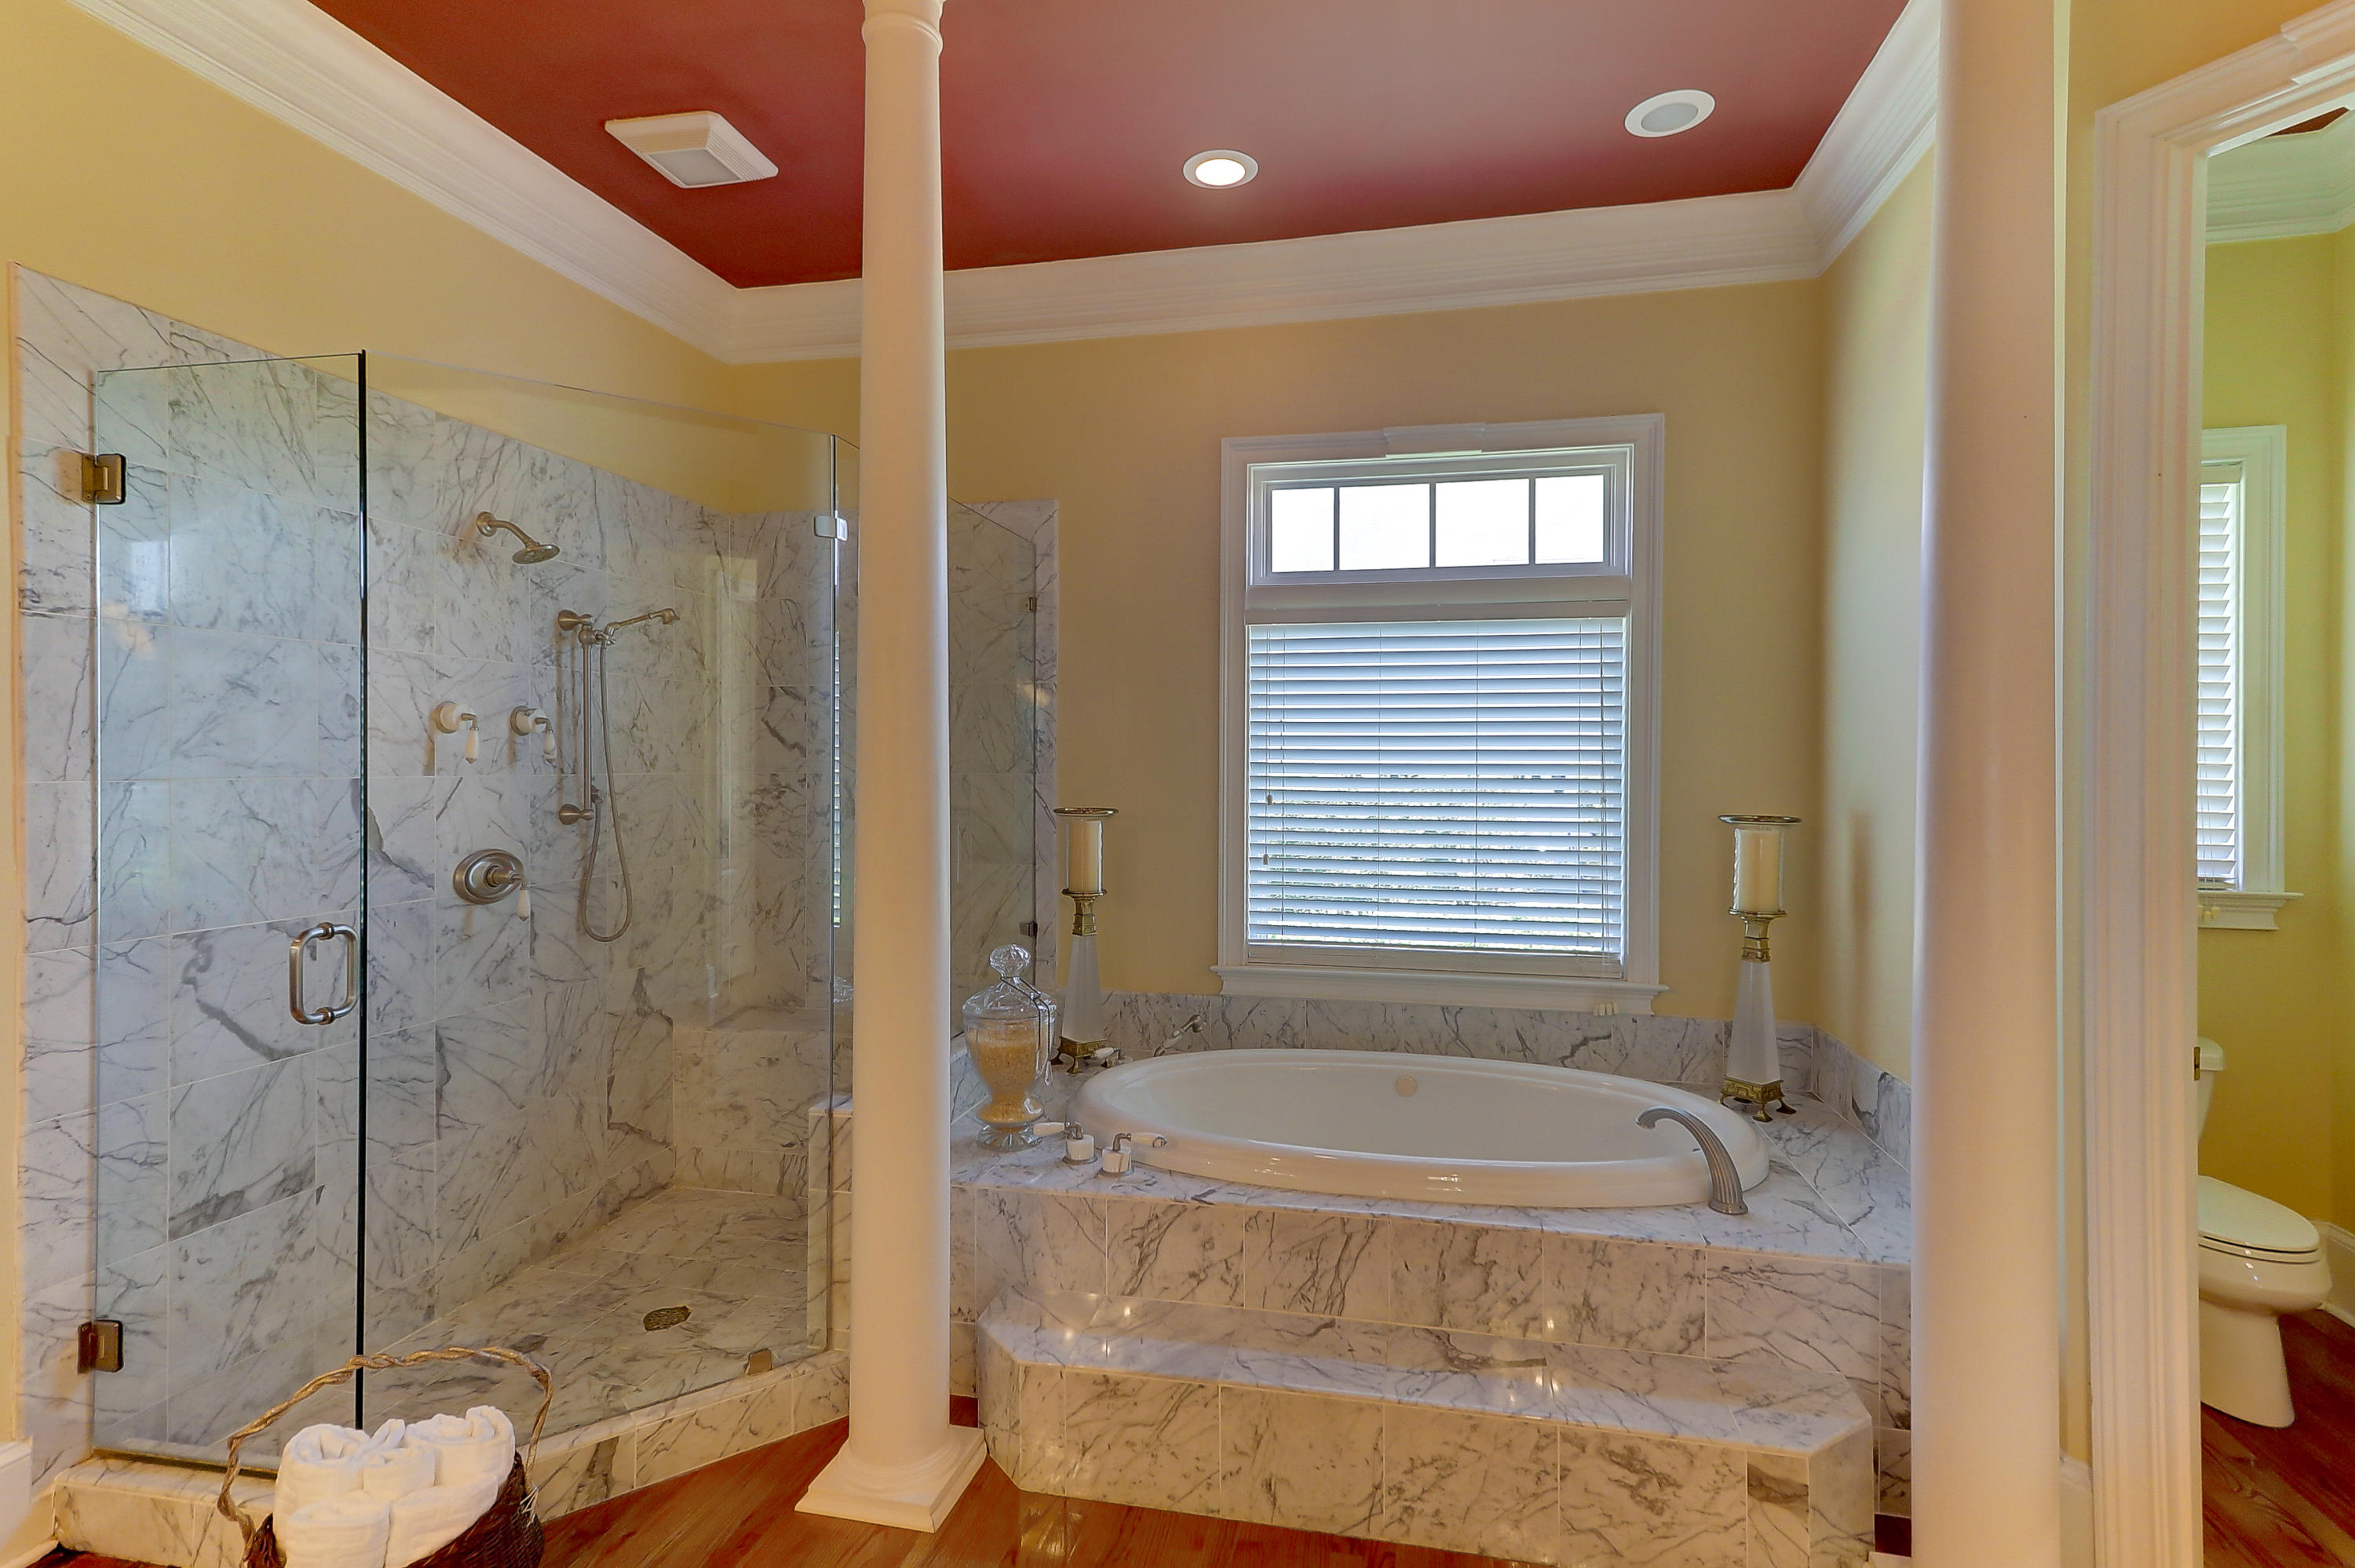 Dunes West Homes For Sale - 2019 Shell Ring, Mount Pleasant, SC - 15